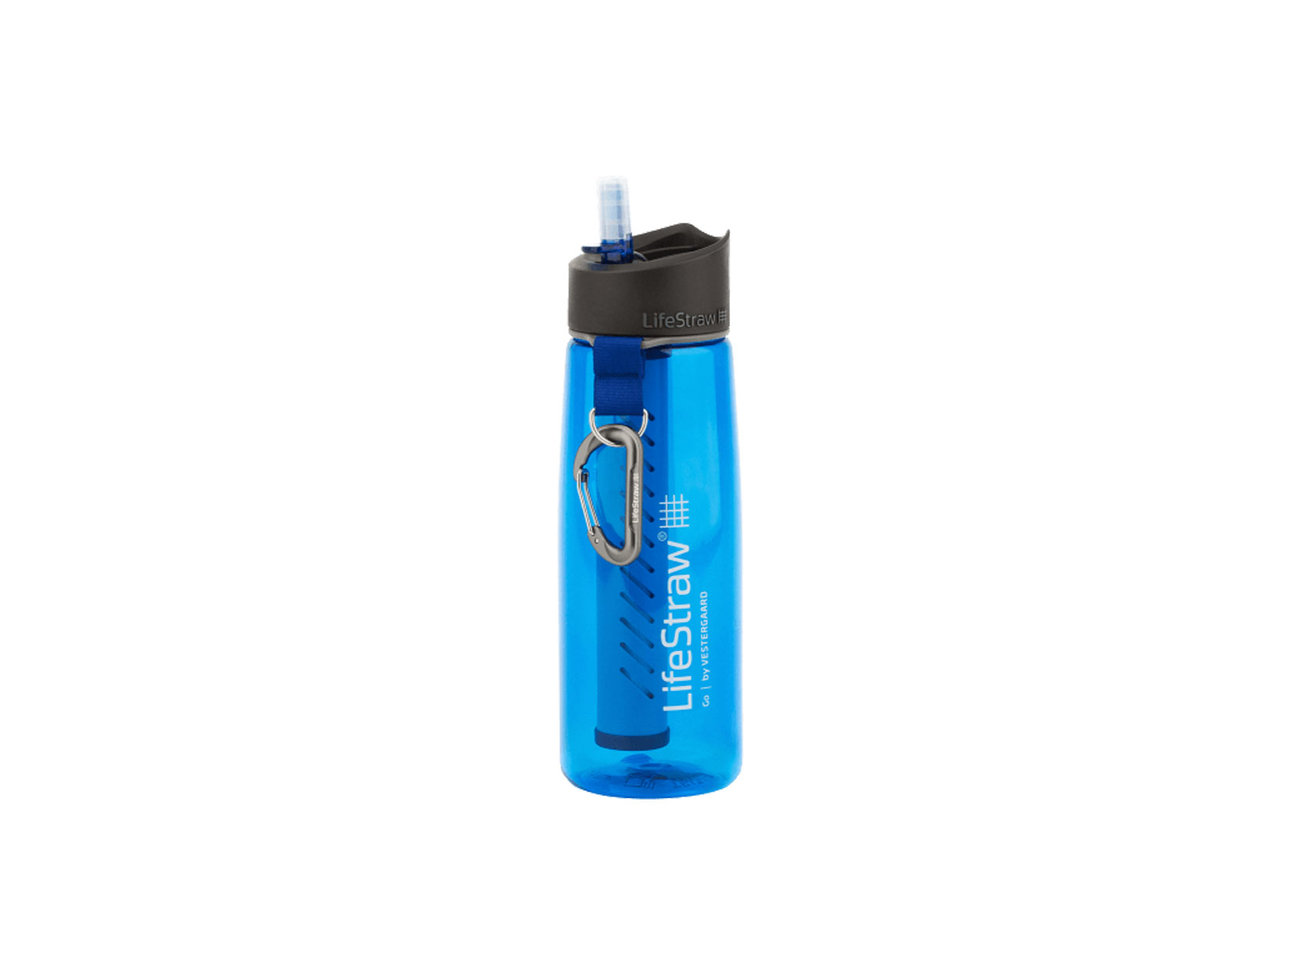 Give-water-bottle-GG1115.jpg